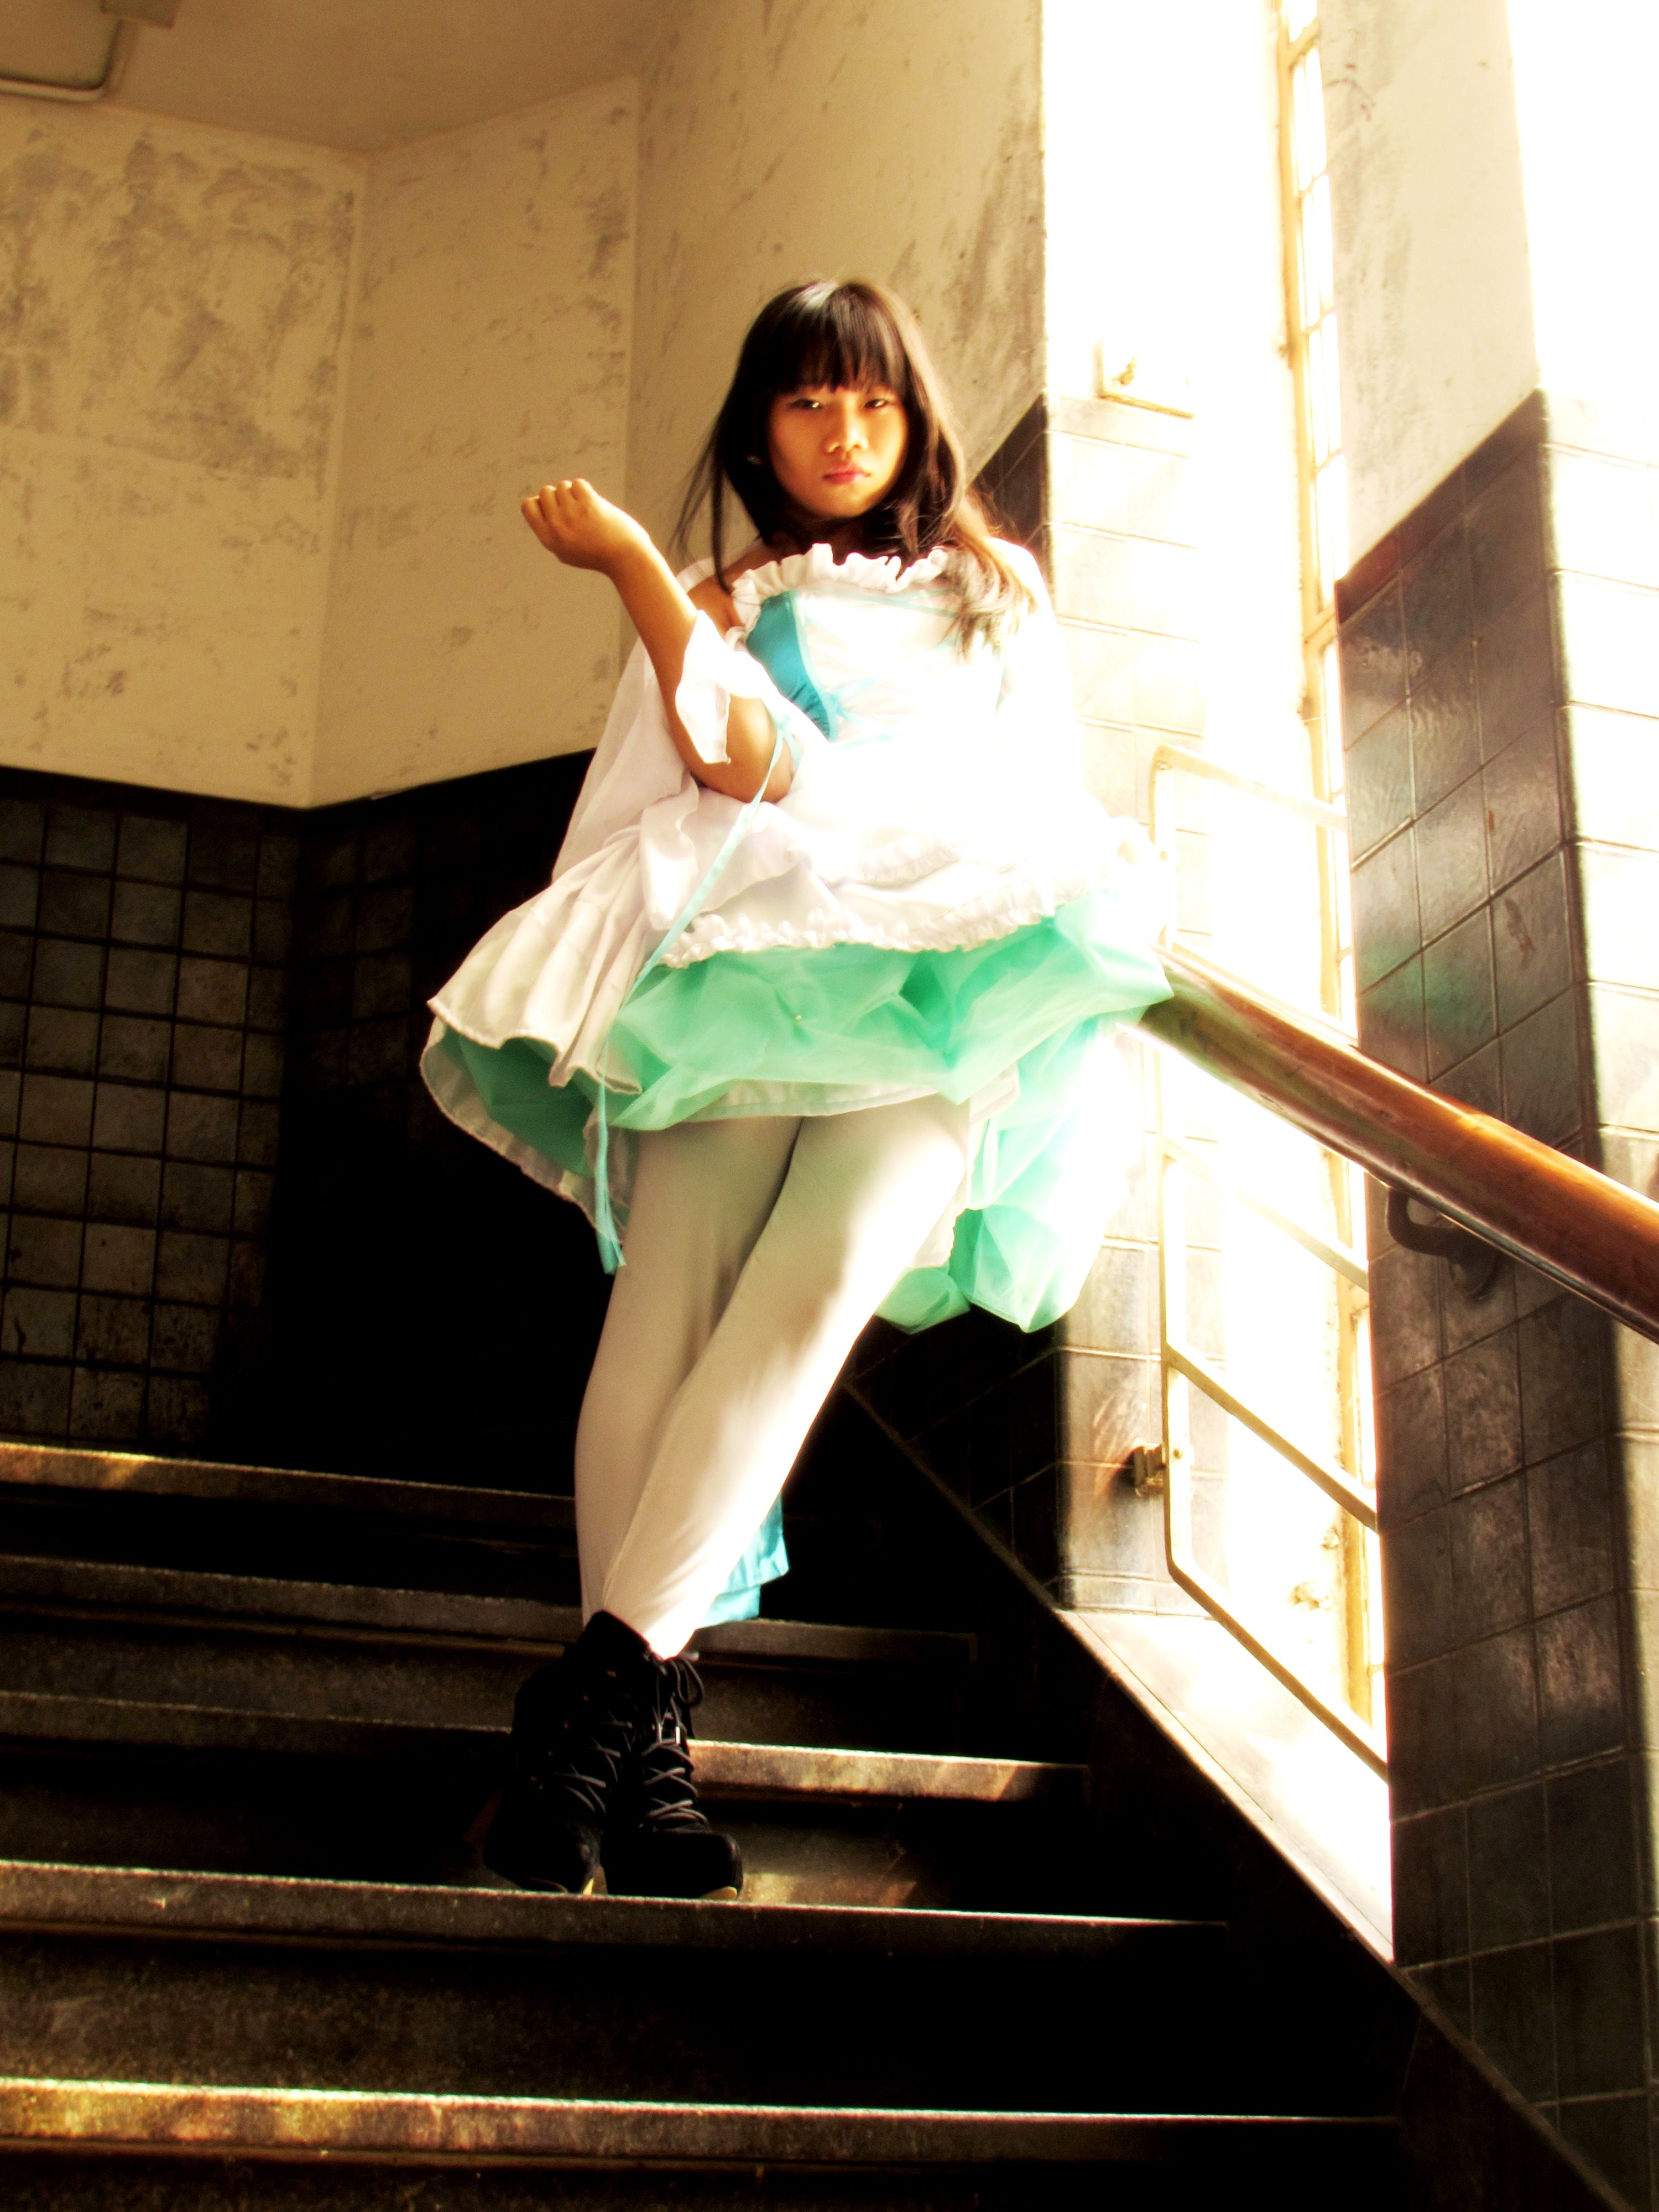 cosplay, wedding dress, fashion, old town, jakarta